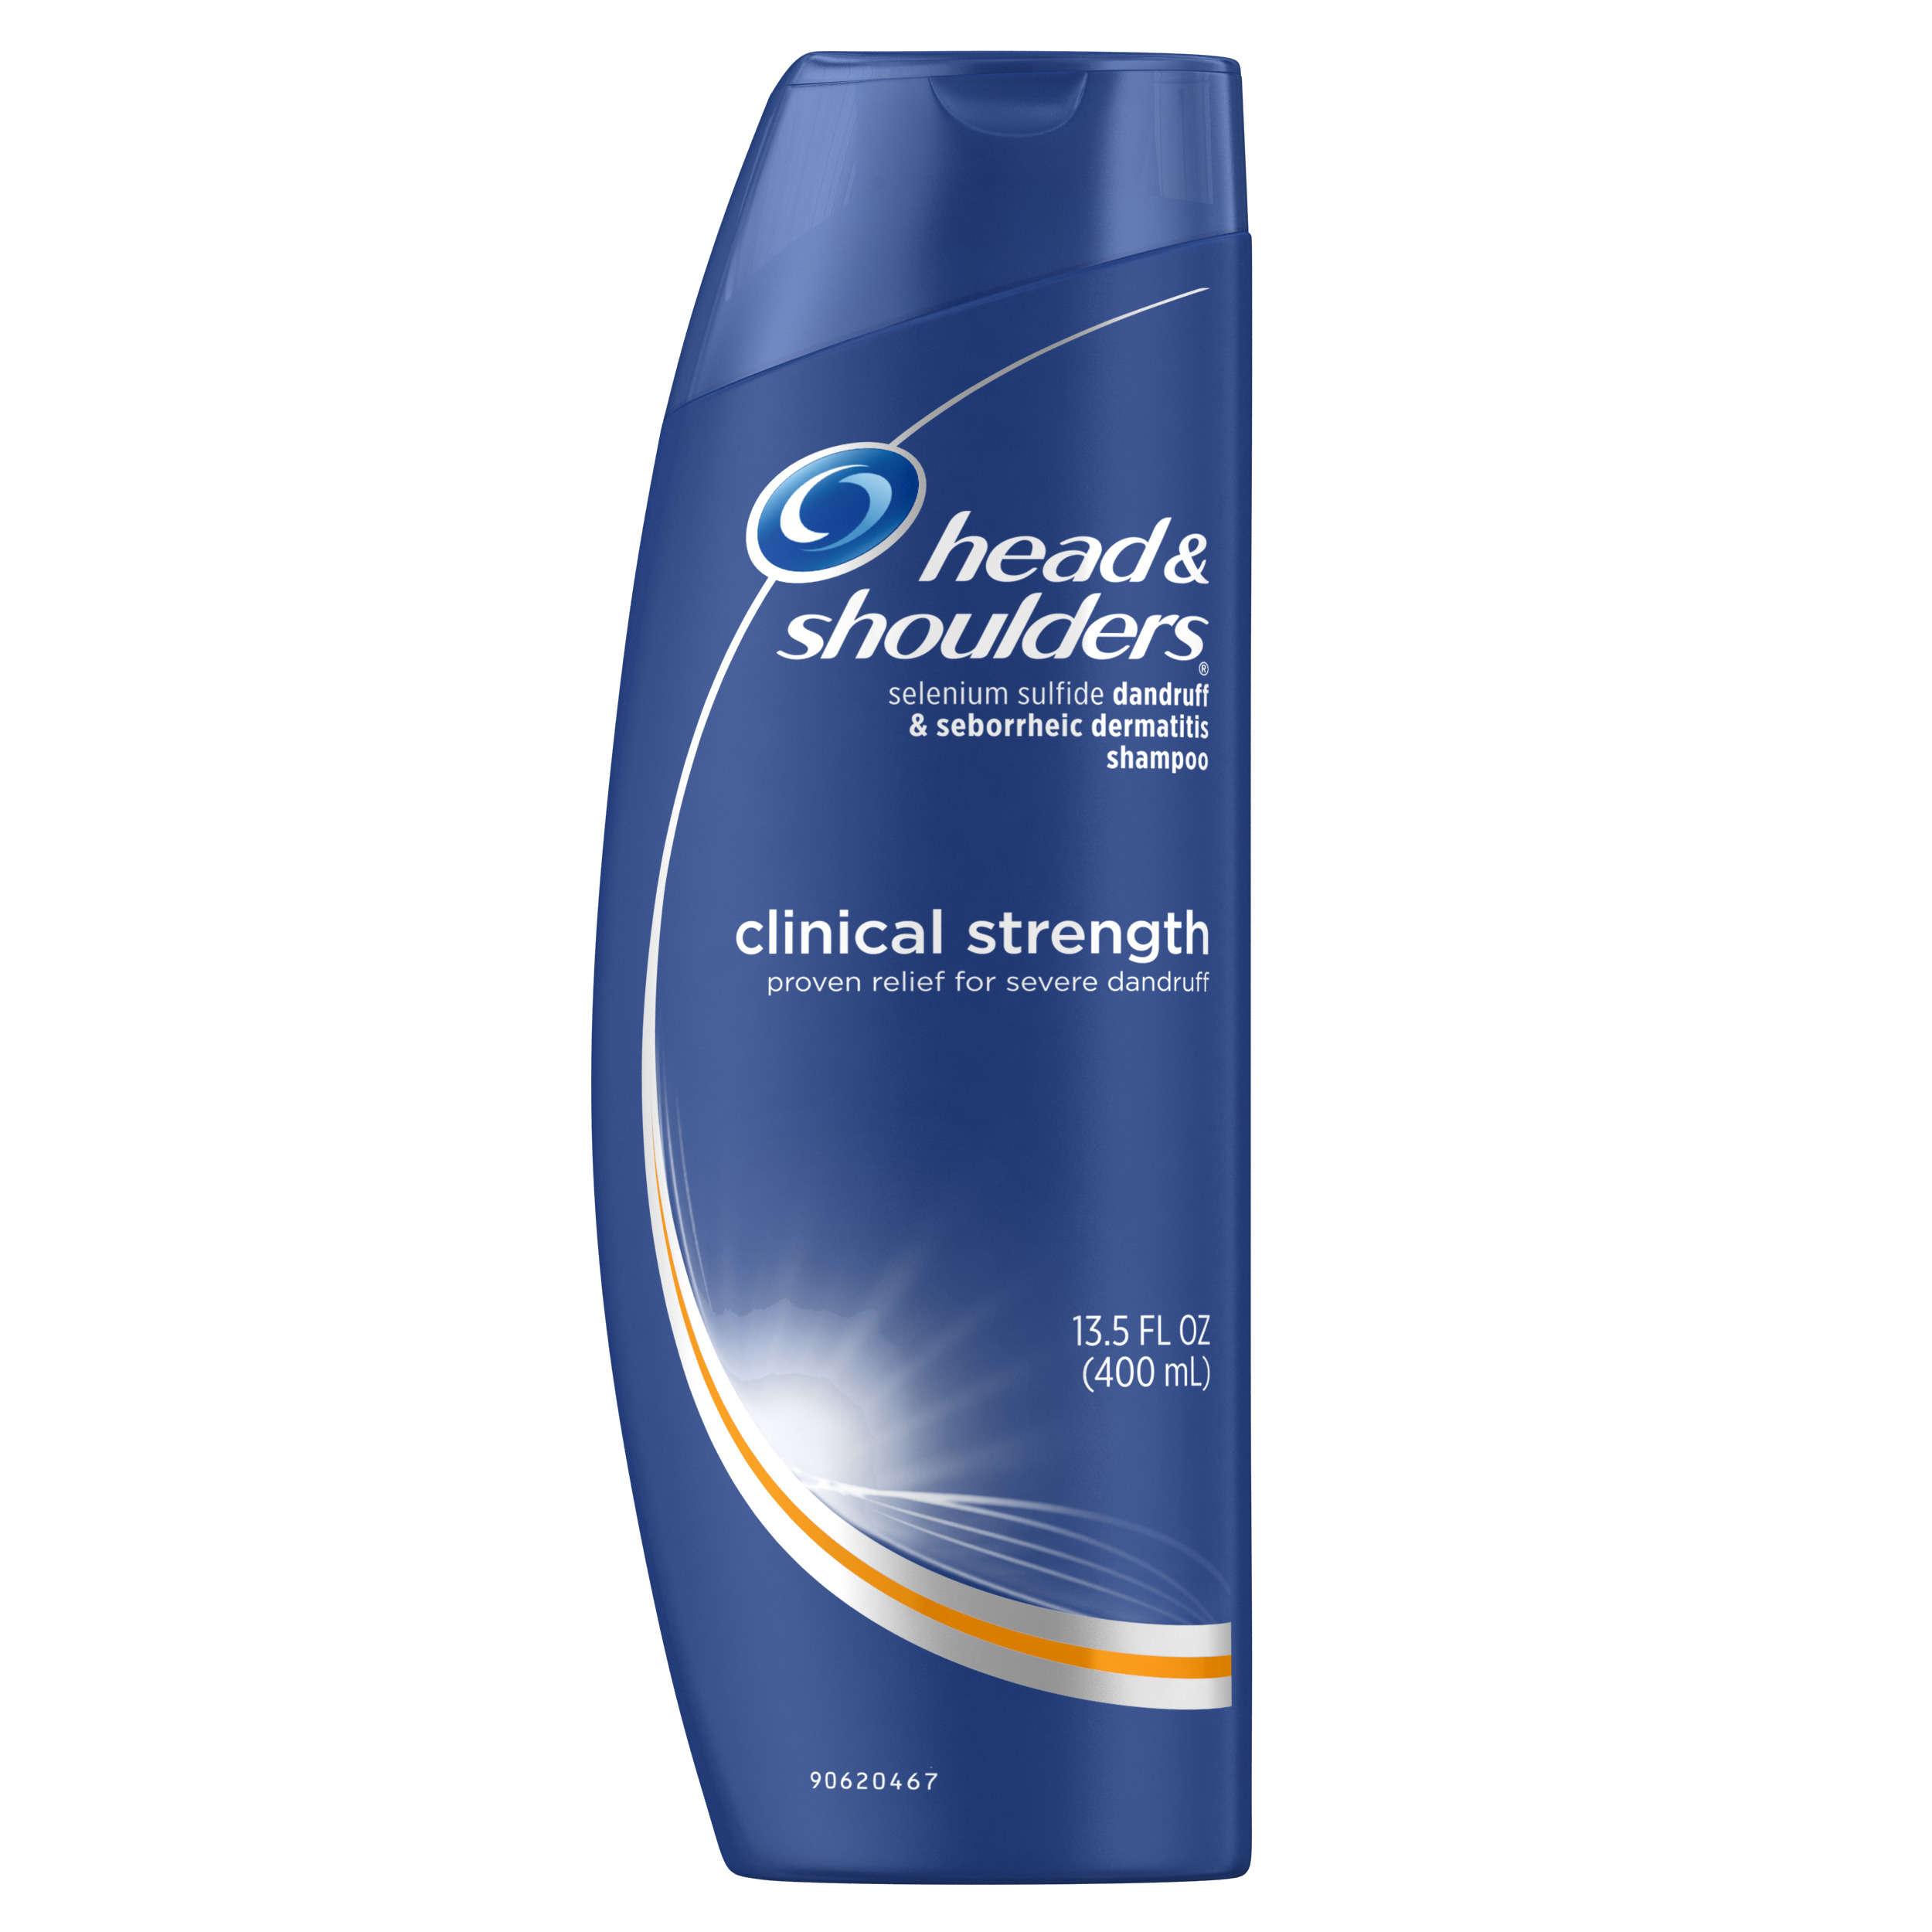 Head and Shoulders Clinical Strength Anti-Dandruff Shampoo 13.5 Fl Oz